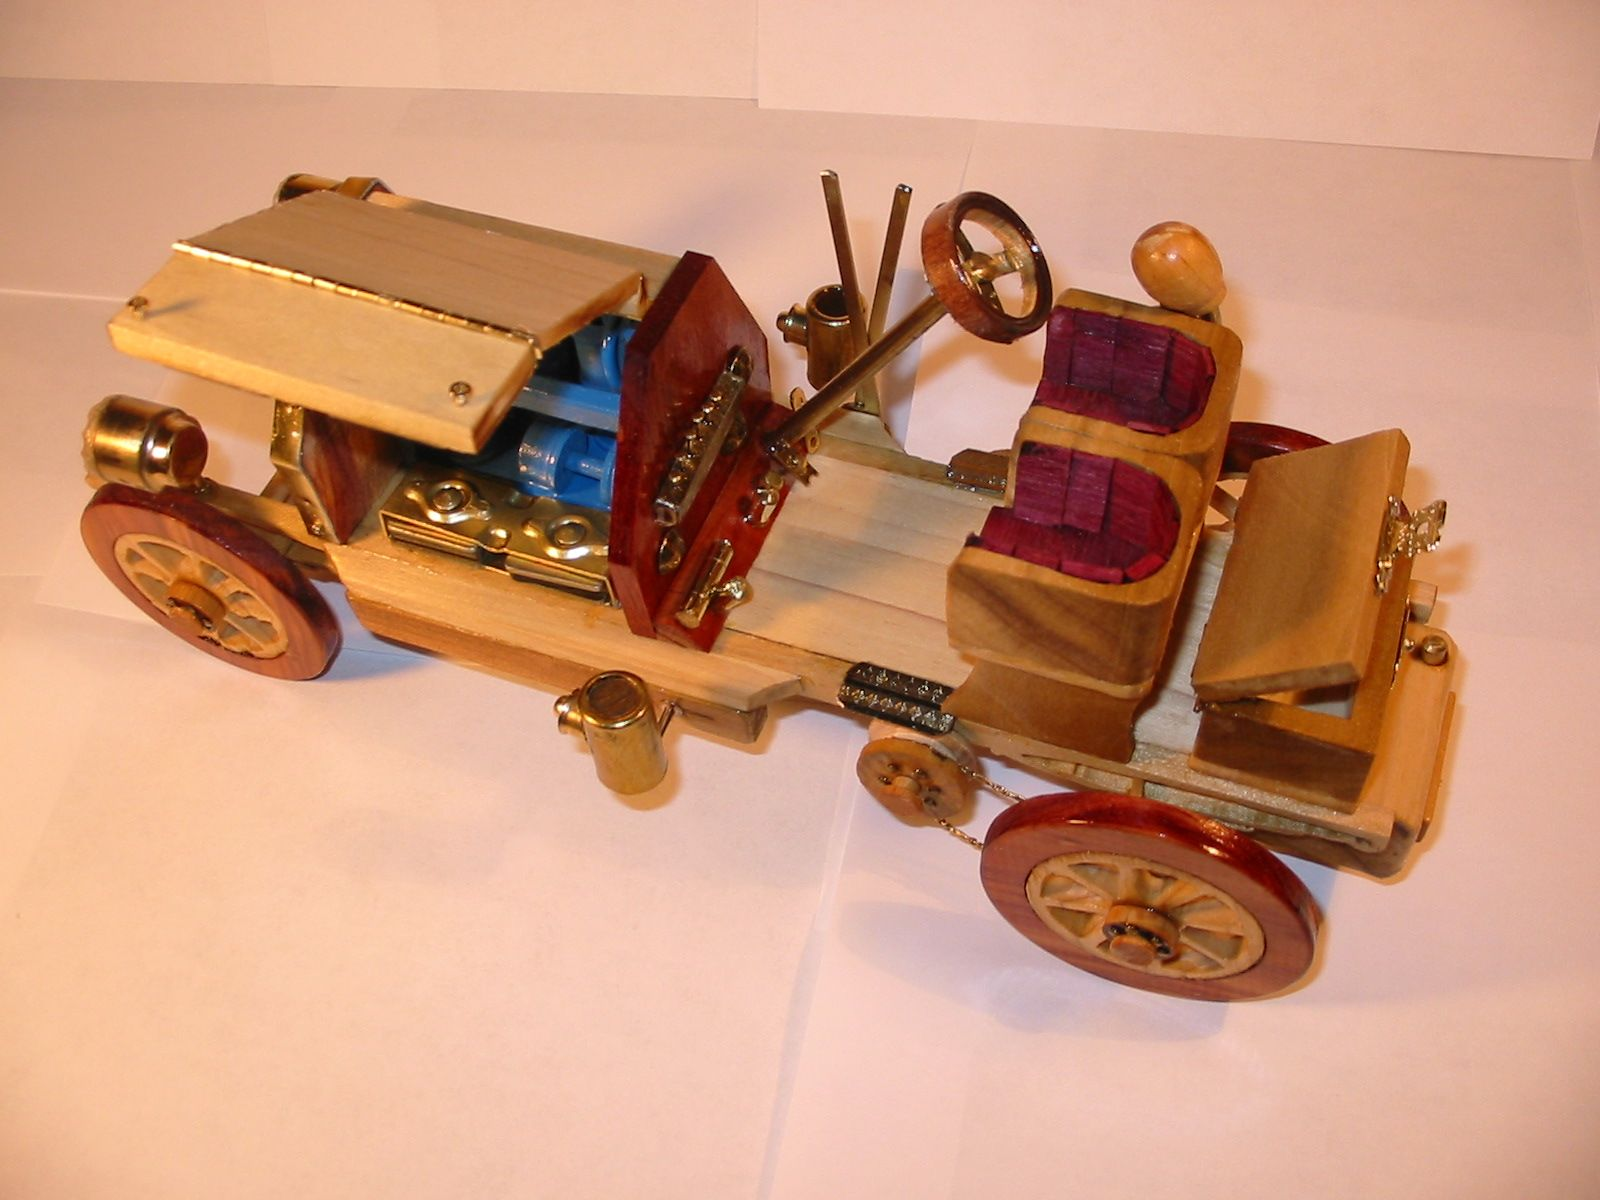 Woodworking Hobby Projects Wood Model Plans How To